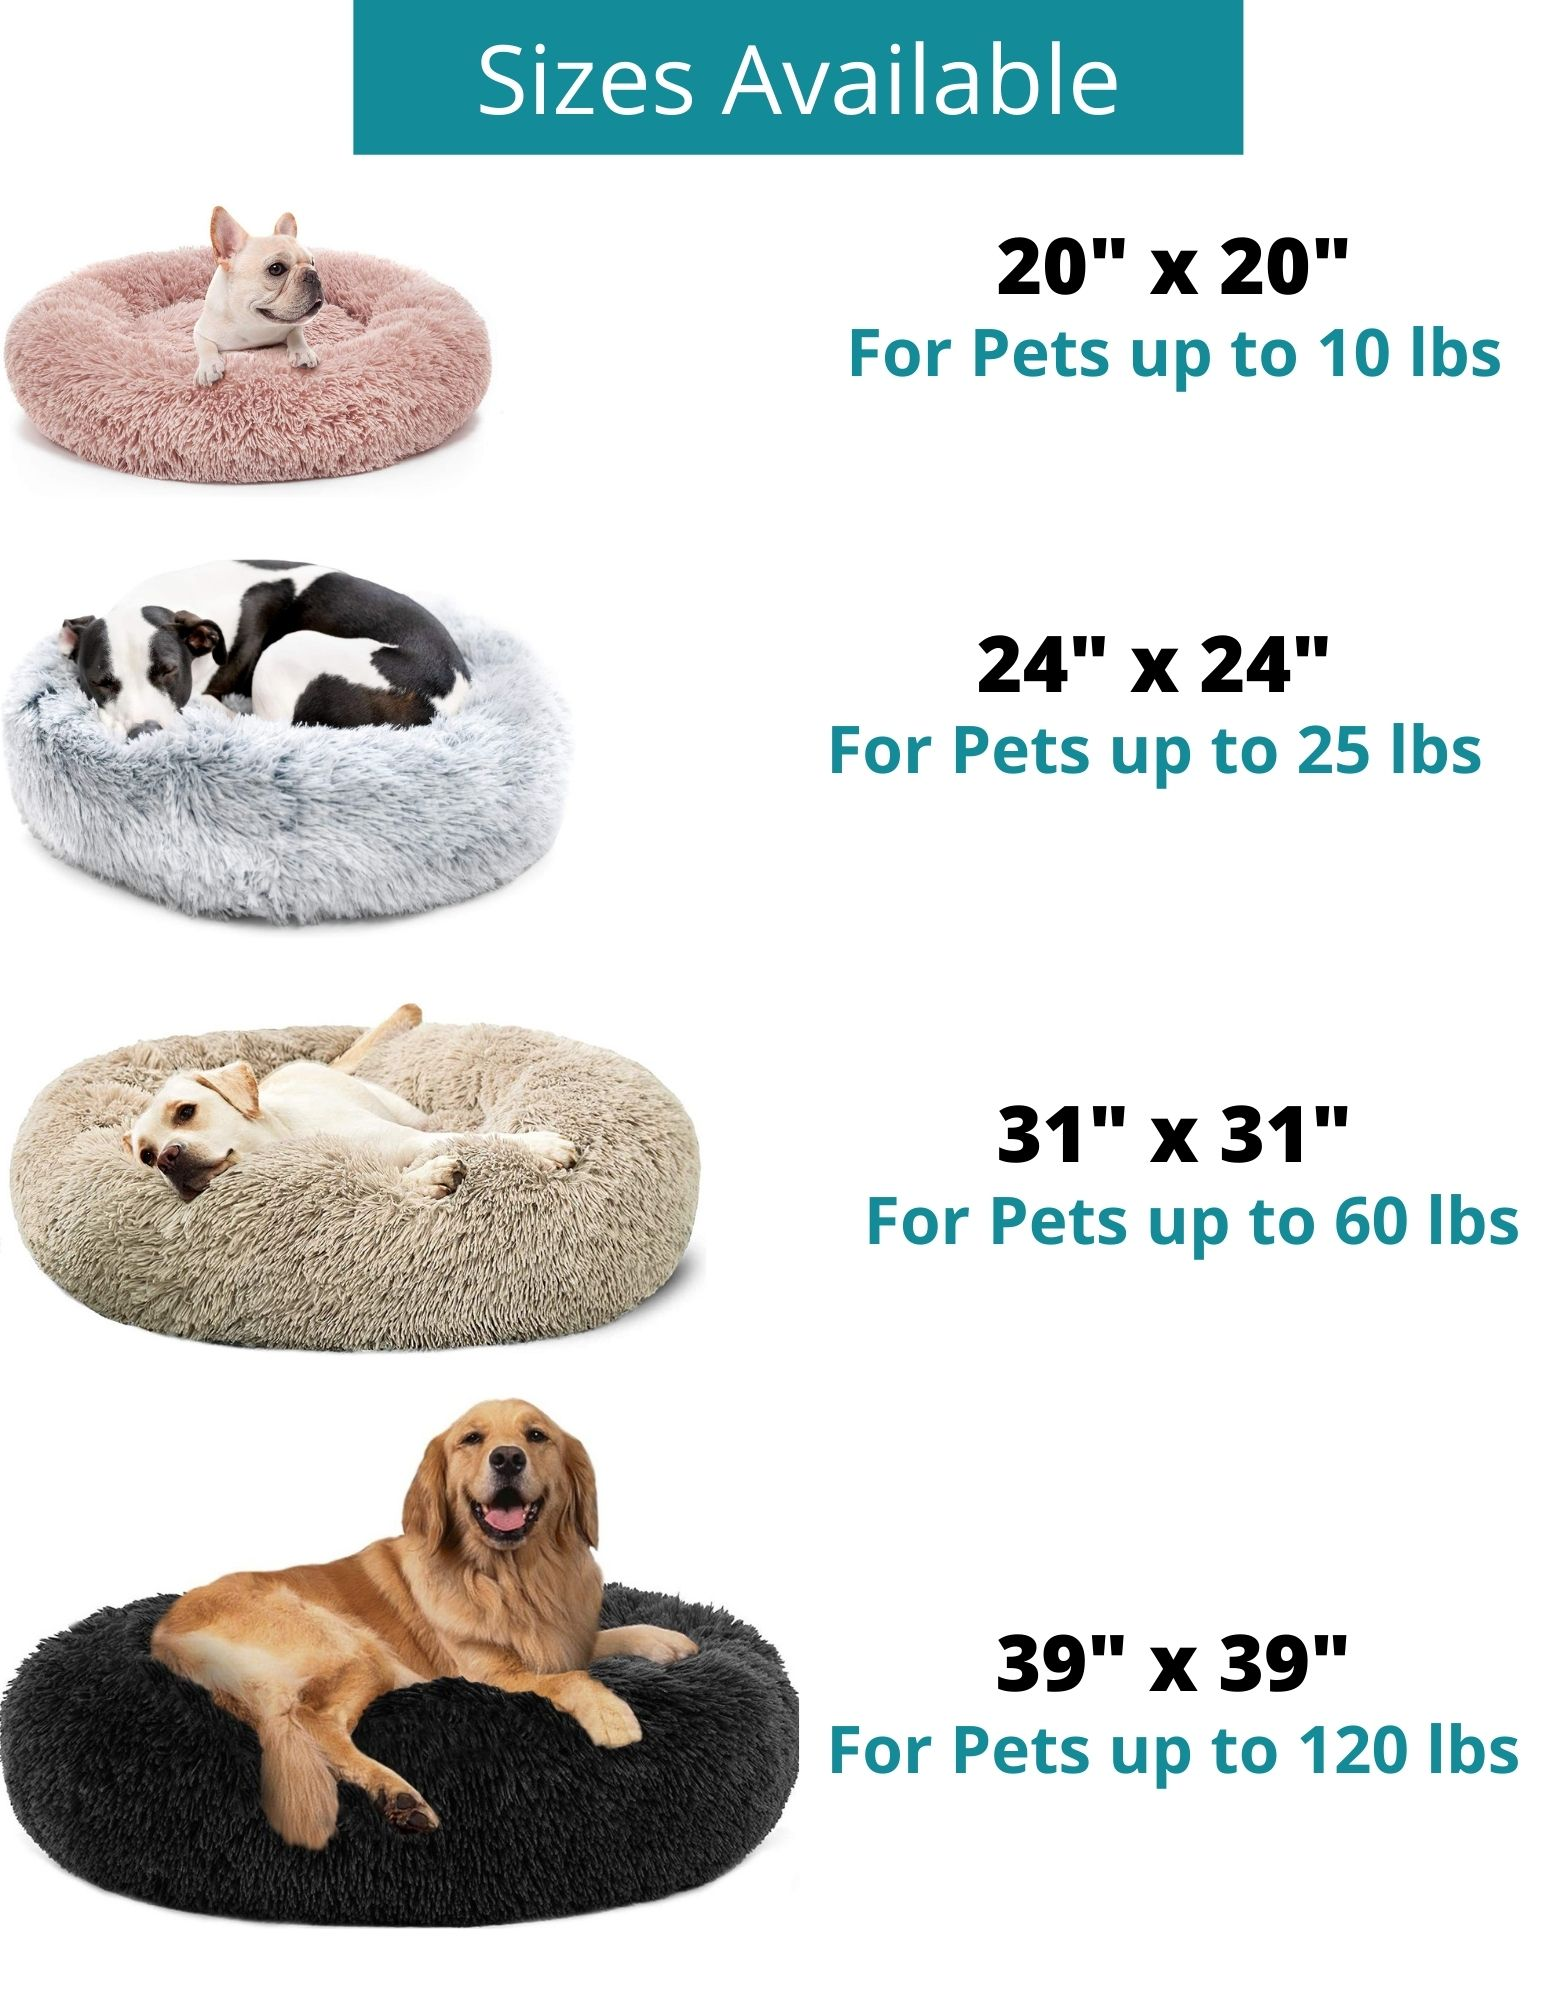 For-Pets-up-to-120-lbs